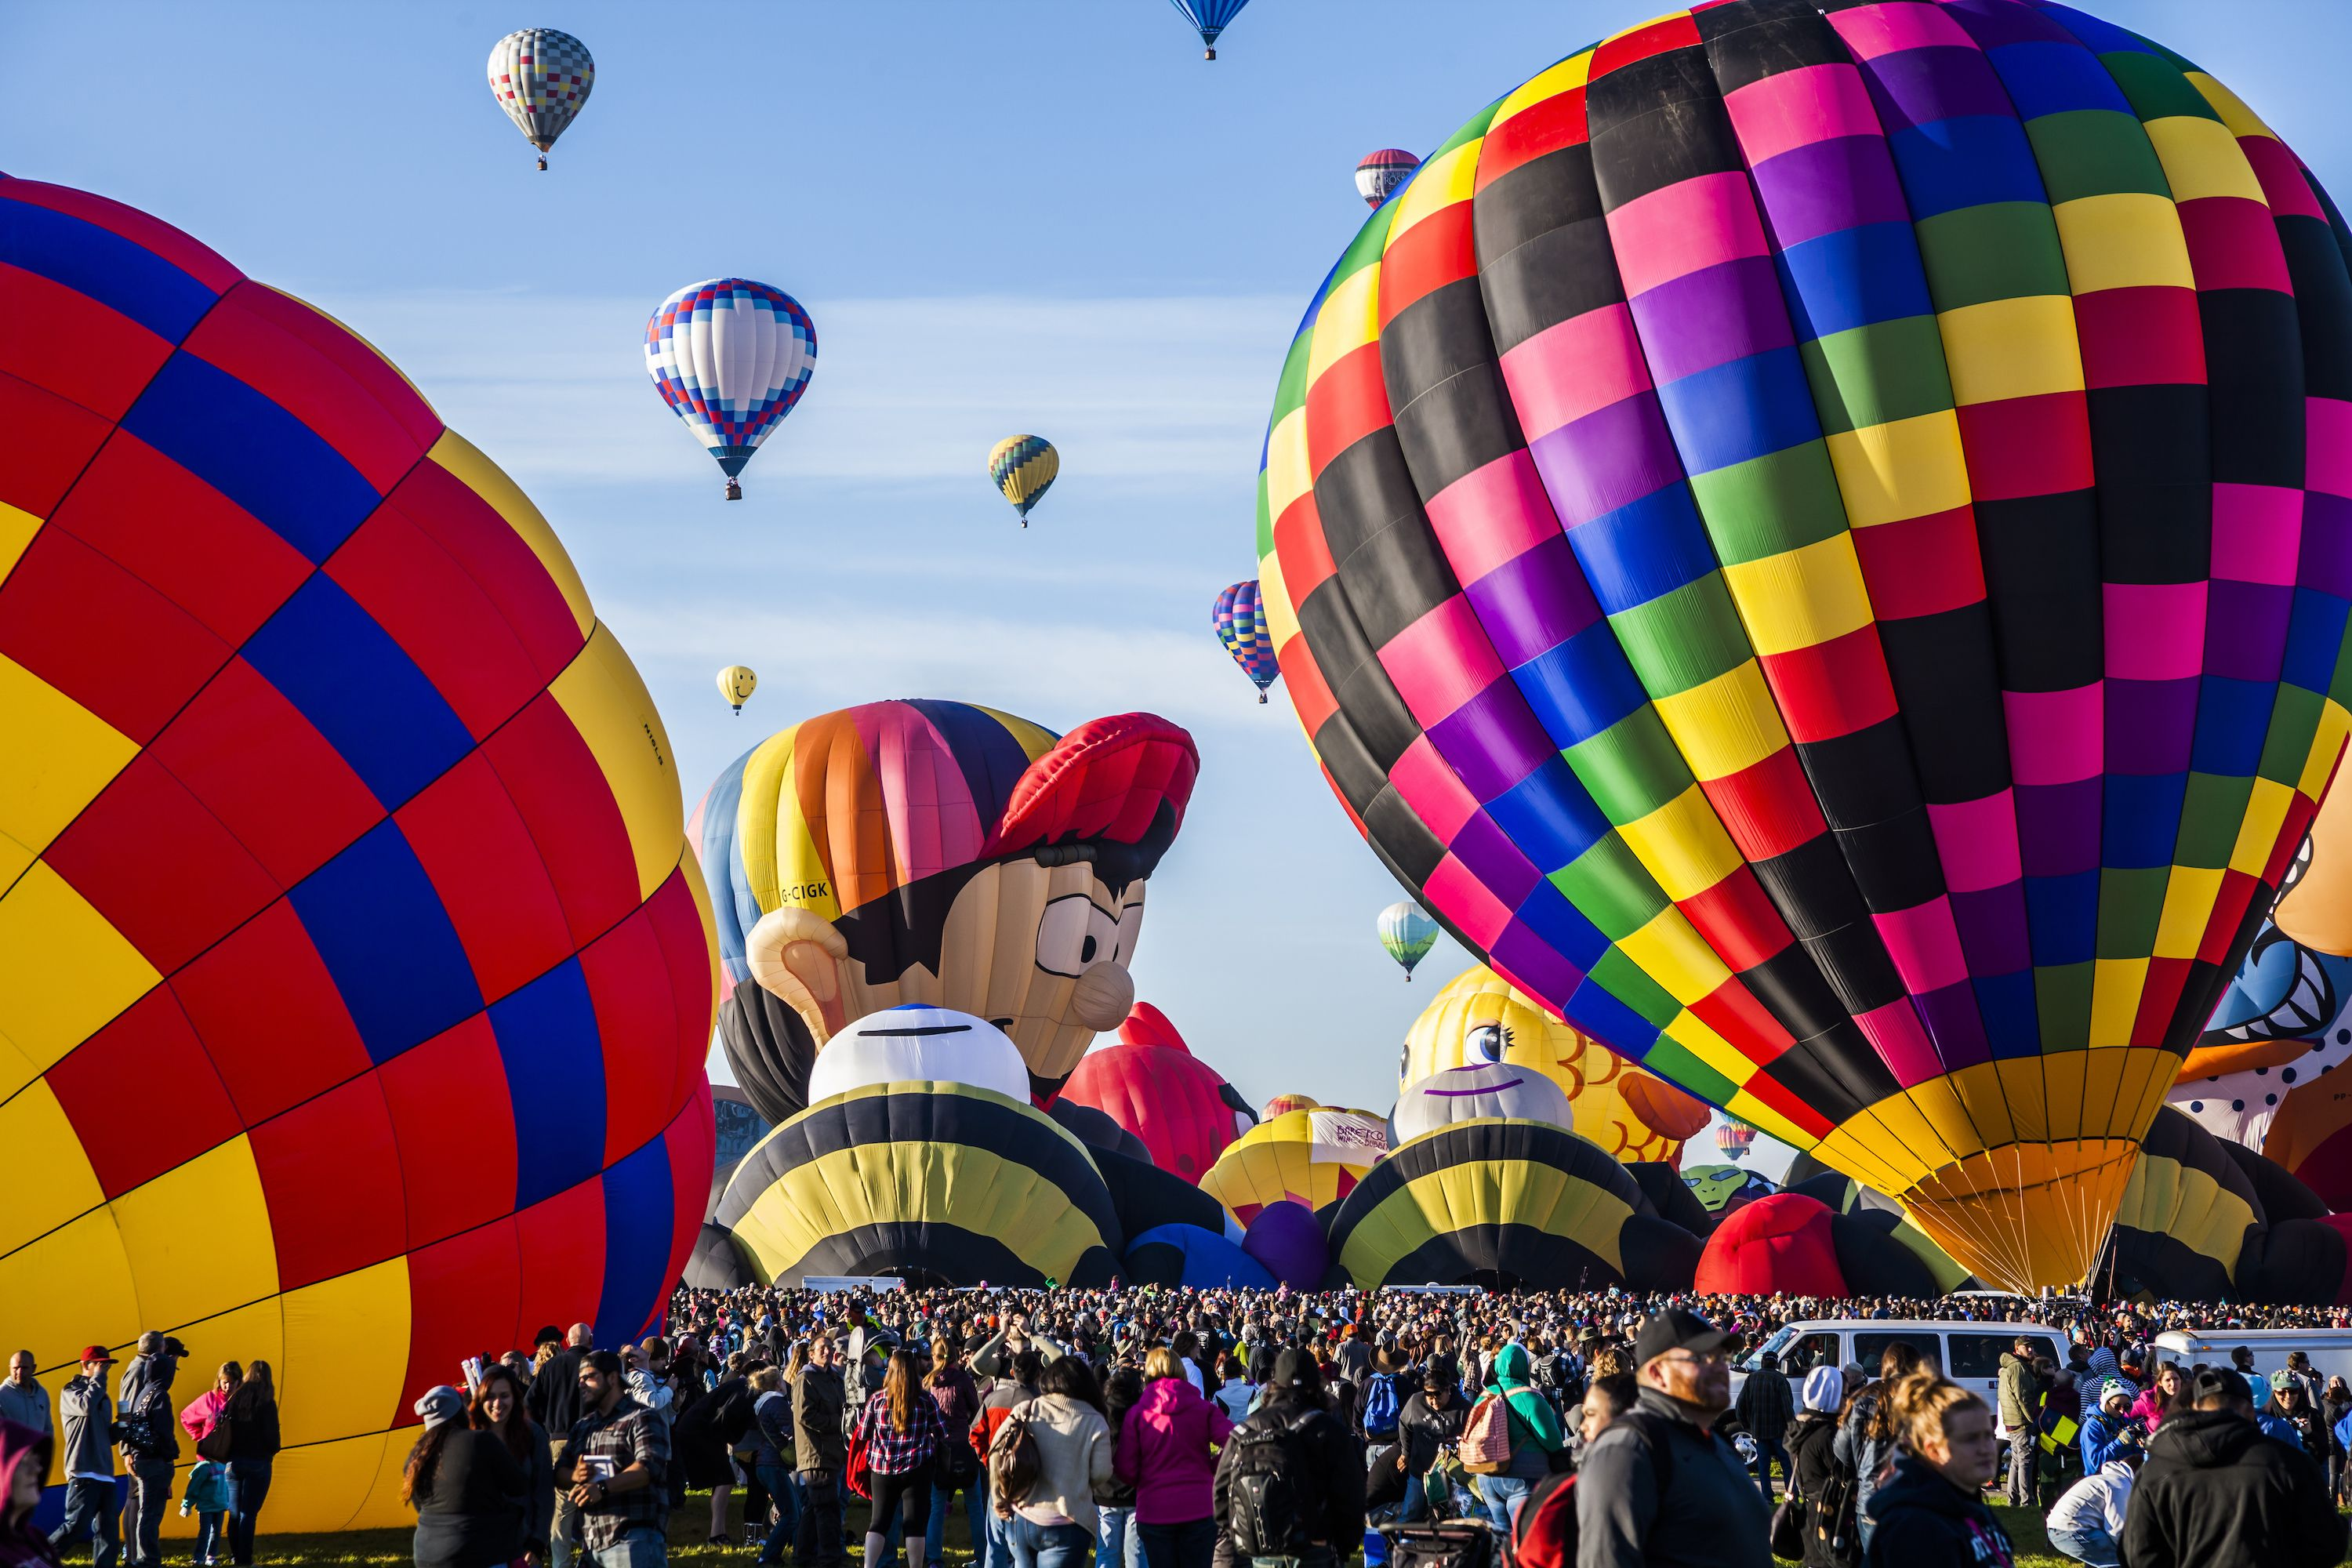 The Best Way to Watch the Albuquerque Hot Air Balloon